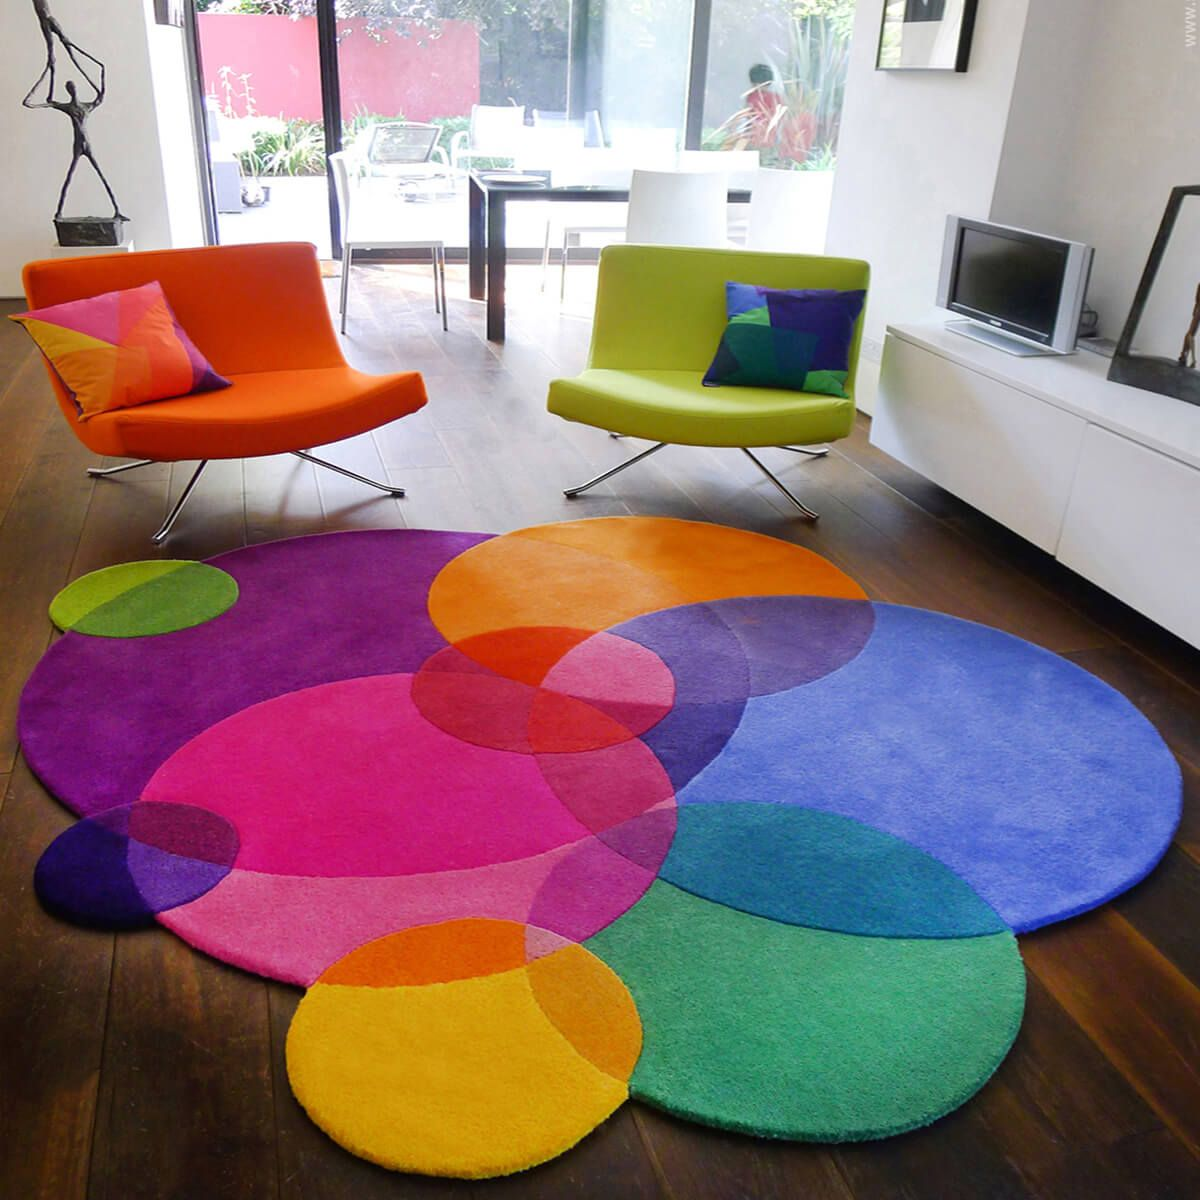 Bubbles Luxury Designer Rug In 2020 Decor Room Decor Colorful Interiors